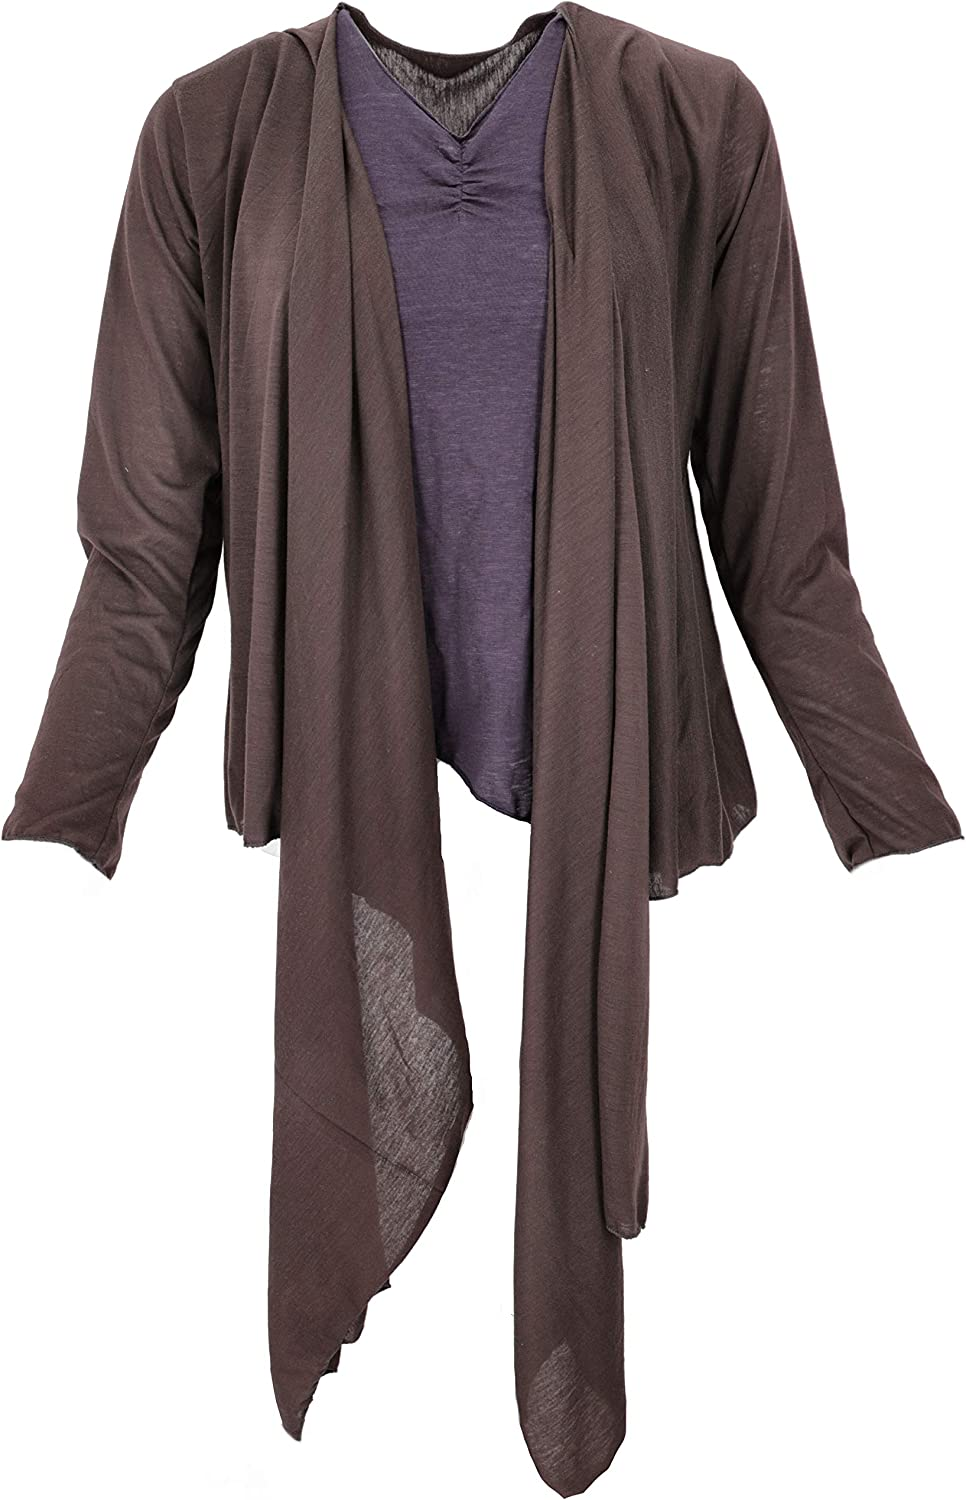 Guru-Shop Wandelbare Wickeljacke, Cardigan, Damen, Braun, Synthetisch, Size:38, Jacken, Mäntel & Ponchos Alternative Bekleidung Coffee